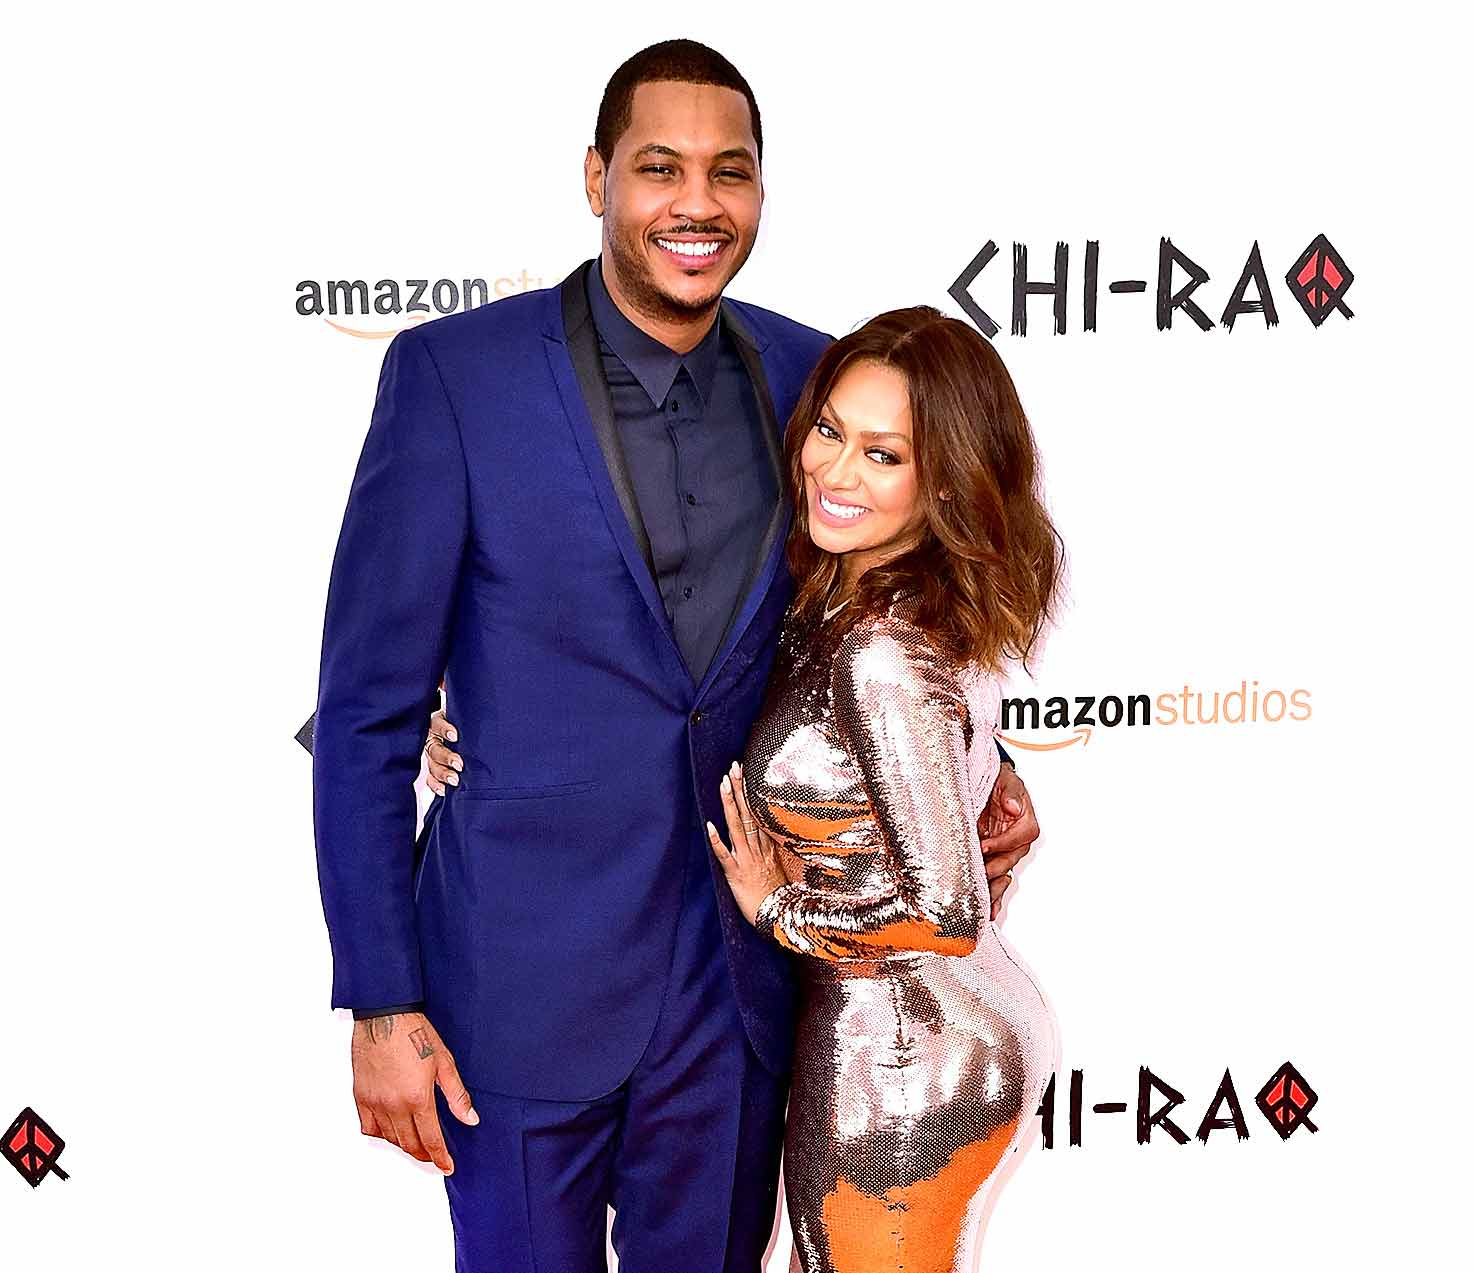 Carmelo Anthony and La La Anthony attend the 'CHI-RAQ' New York premiere at the Ziegfeld Theater on December 1, 2015 in New York City.